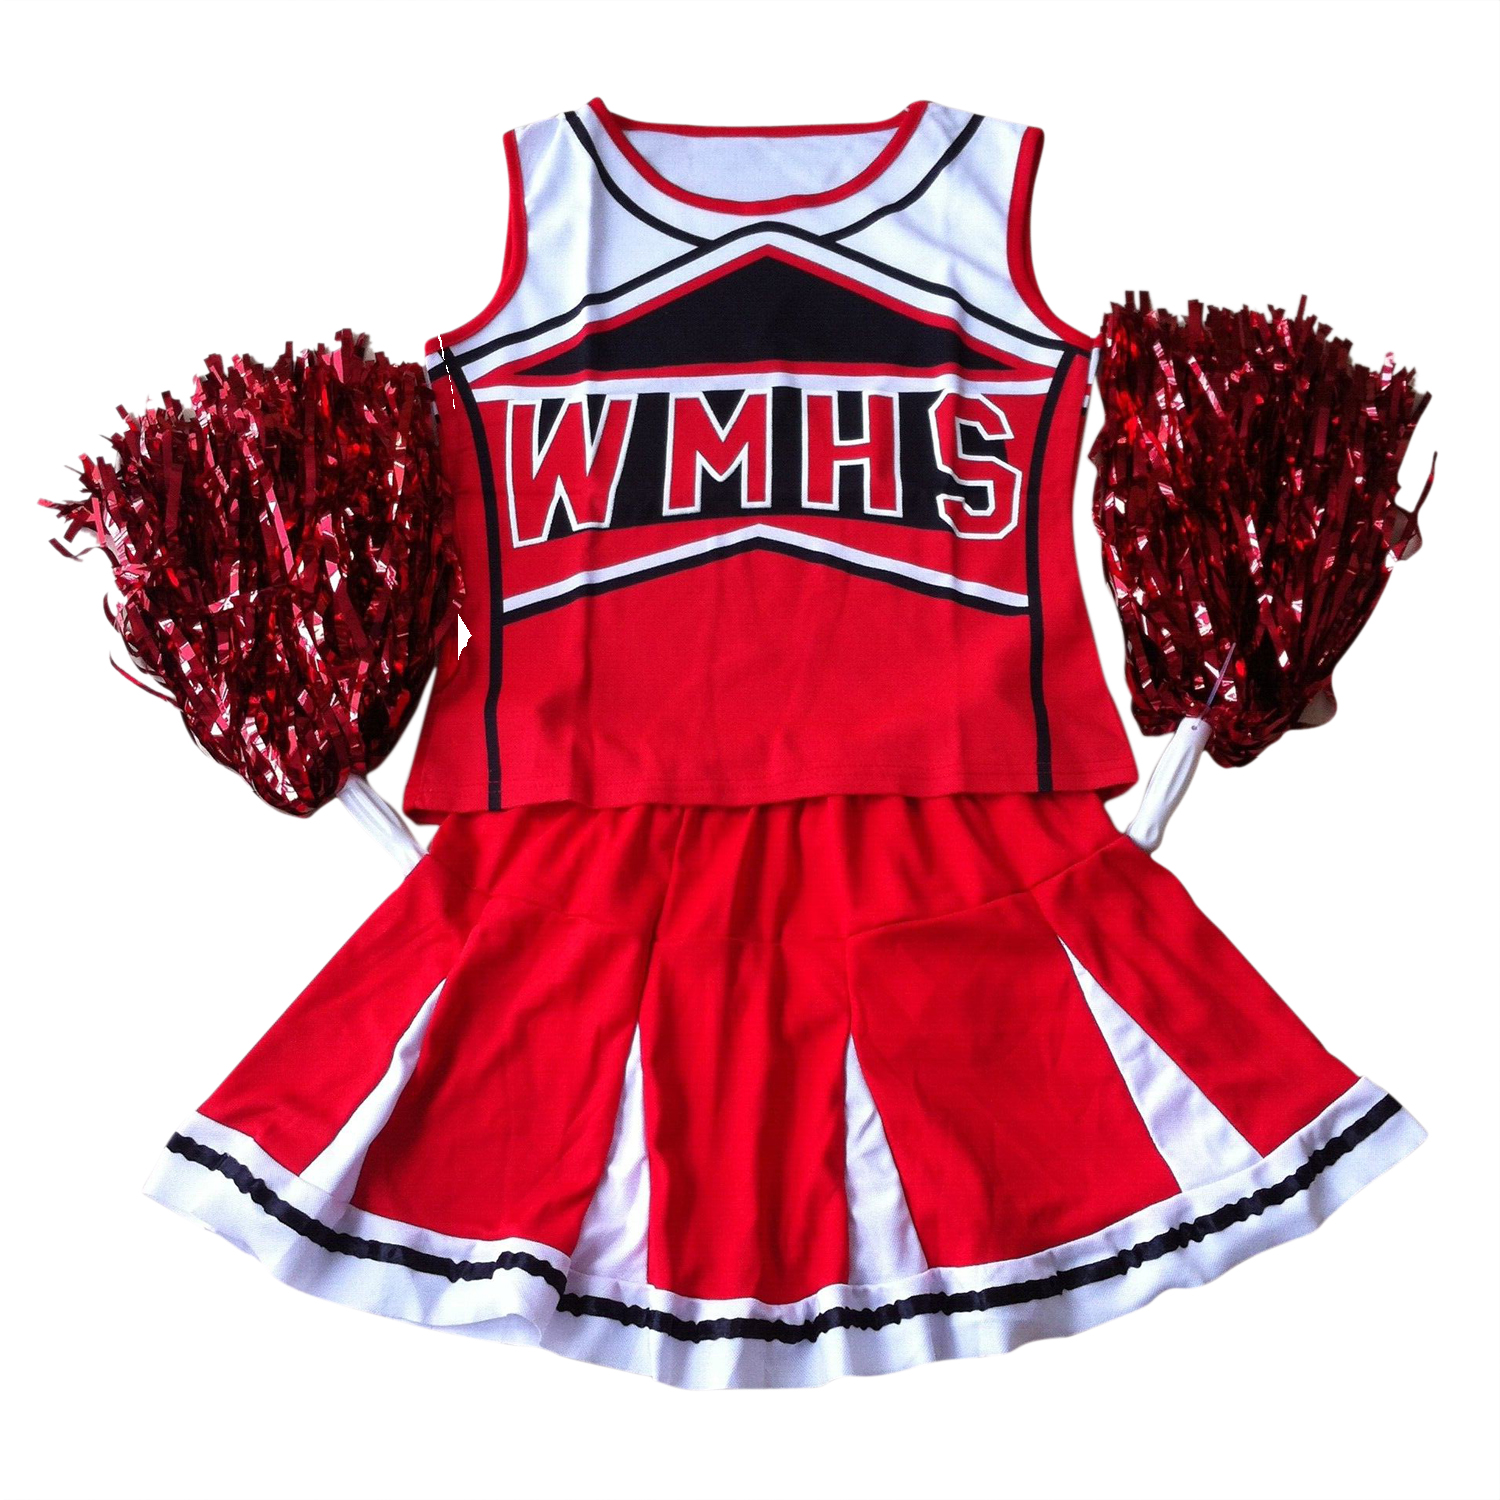 5pcs( Tank top Petticoat Pom cheerleader cheer leaders M (34-36) 2 piece suit new red costume